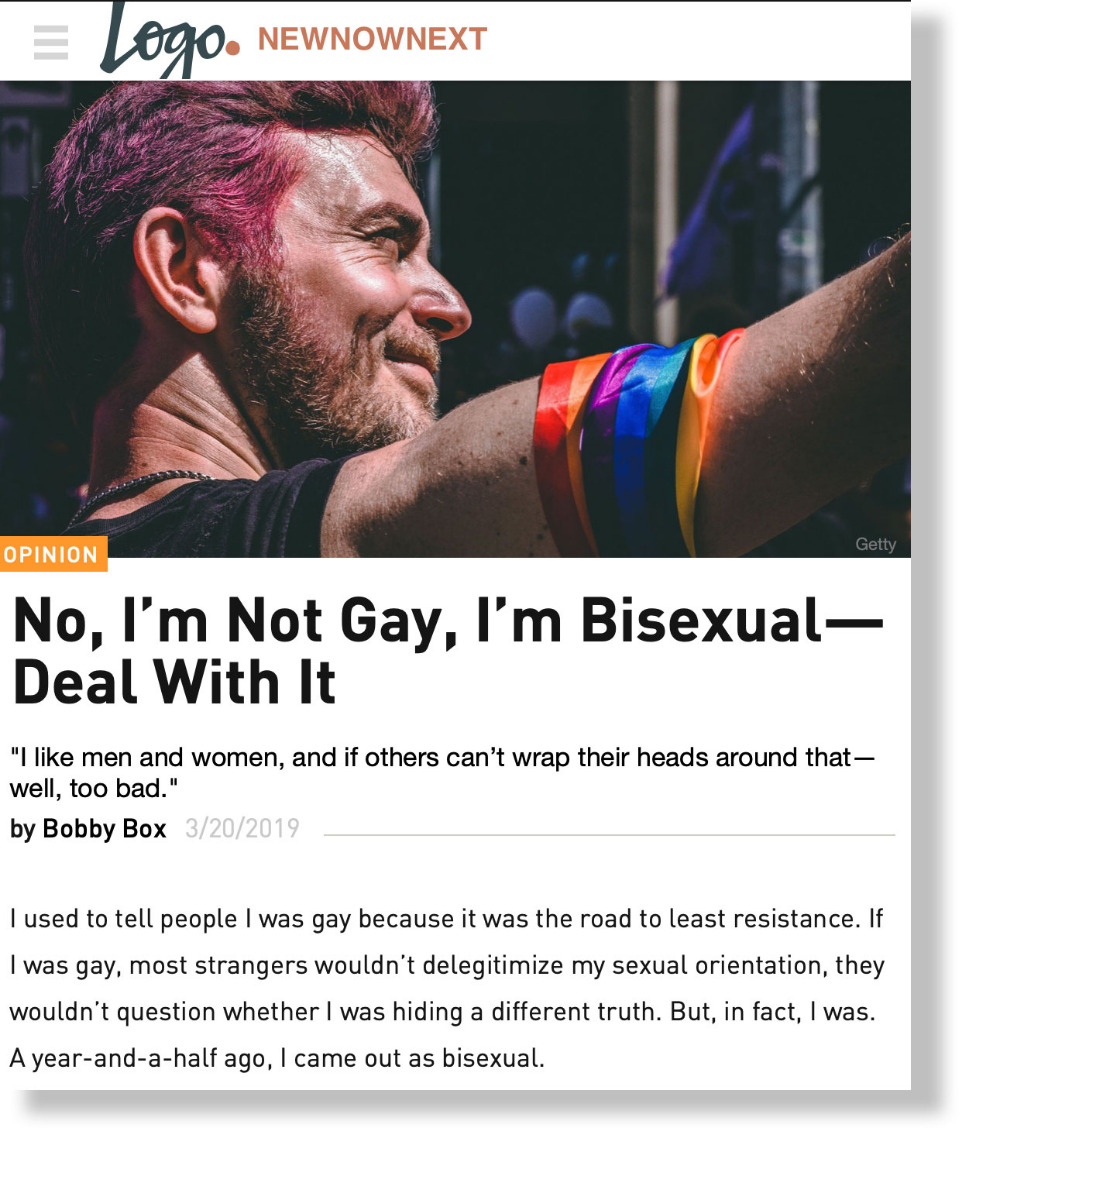 No, I'm Not Gay, I'm Bisexual—Deal With It on NewNowNext